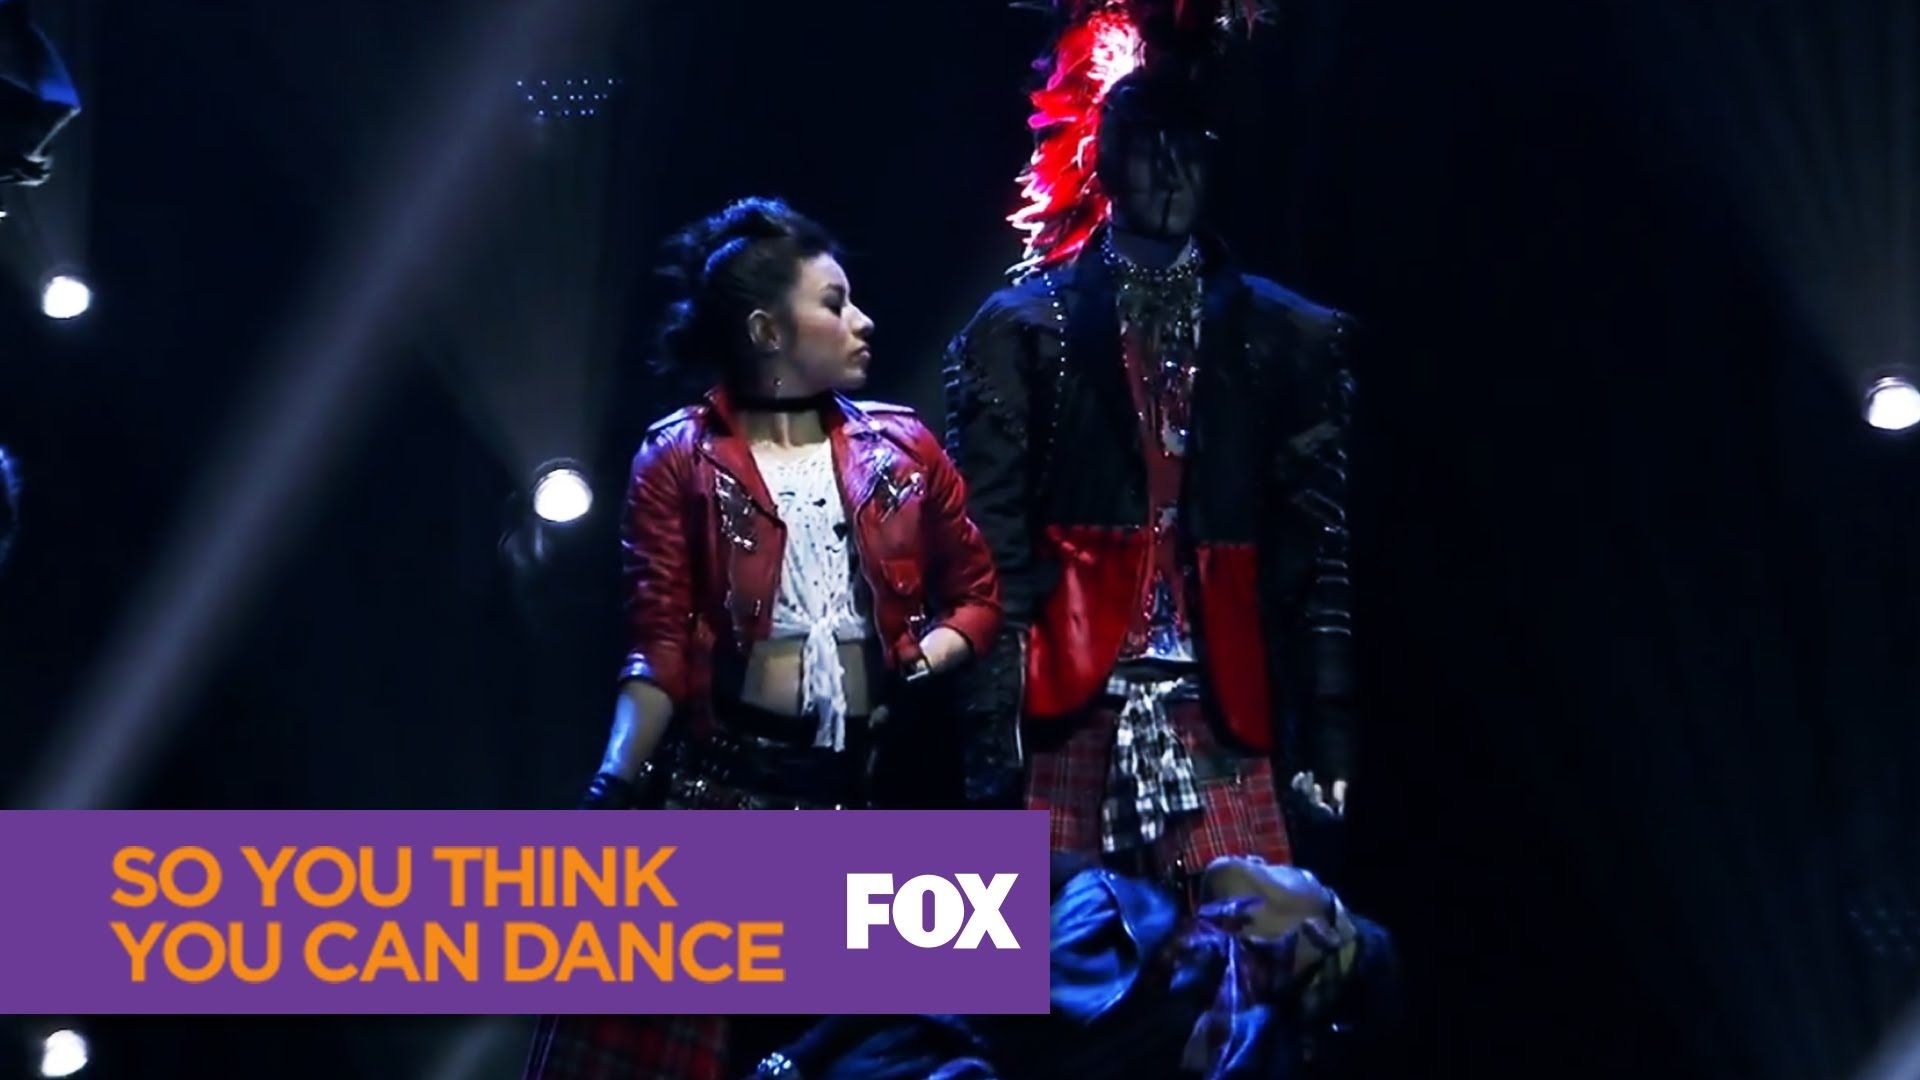 Pin by Katie Dugan on So You Think You Can Dance? (With